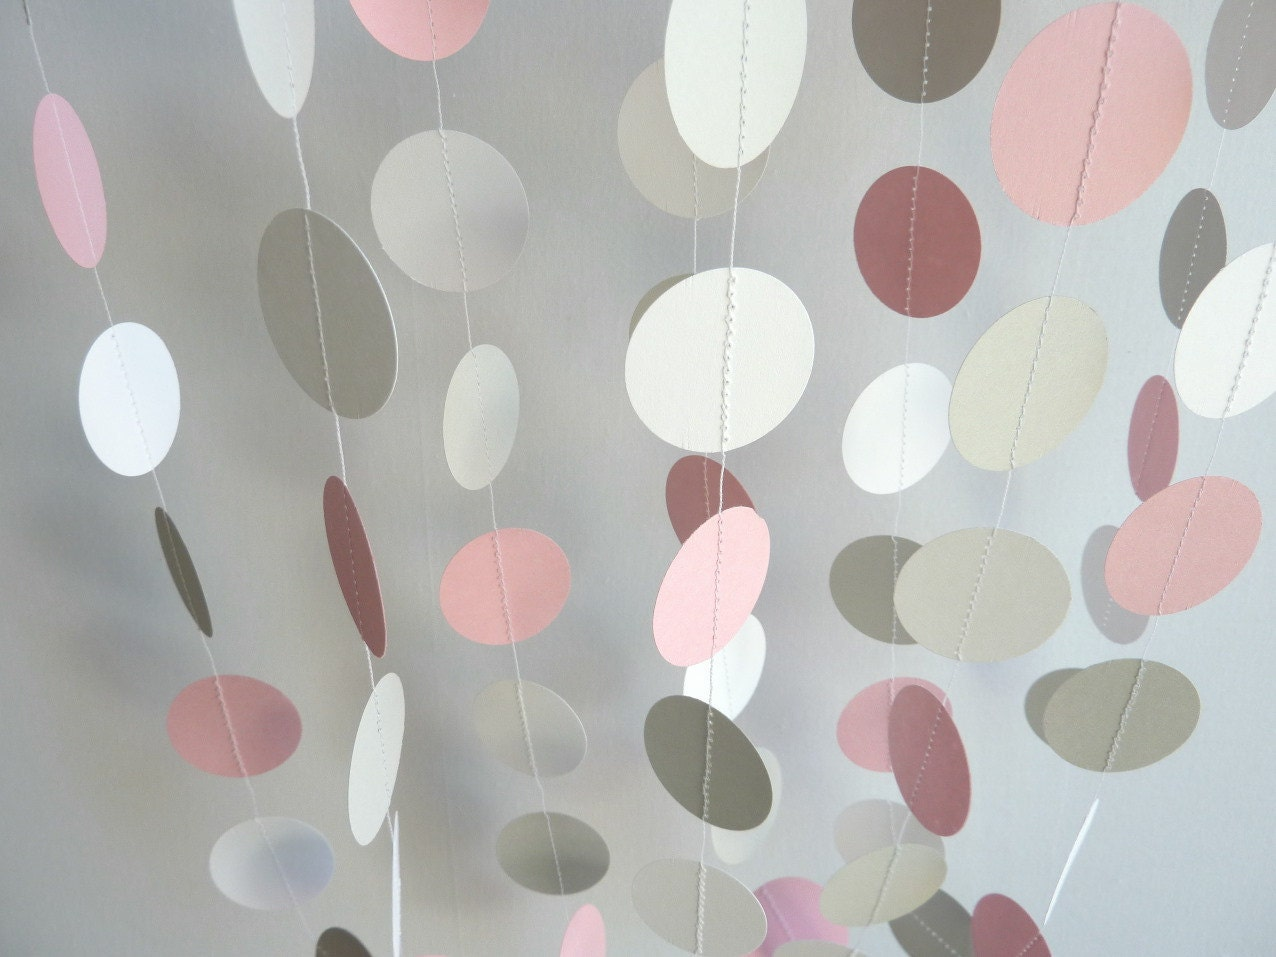 Pink Gray & White Circle Paper Garland By Fabulouslyhomemade. Living Room Shelving Ideas. Bella Fiore Frames. Floor Joists Are Typically What Size In Residential Construction. Tiny House Pics. Cost To Paint Walls. Birch Cabinets. Narrow Bathroom Sink. Artscape Decorative Window Film